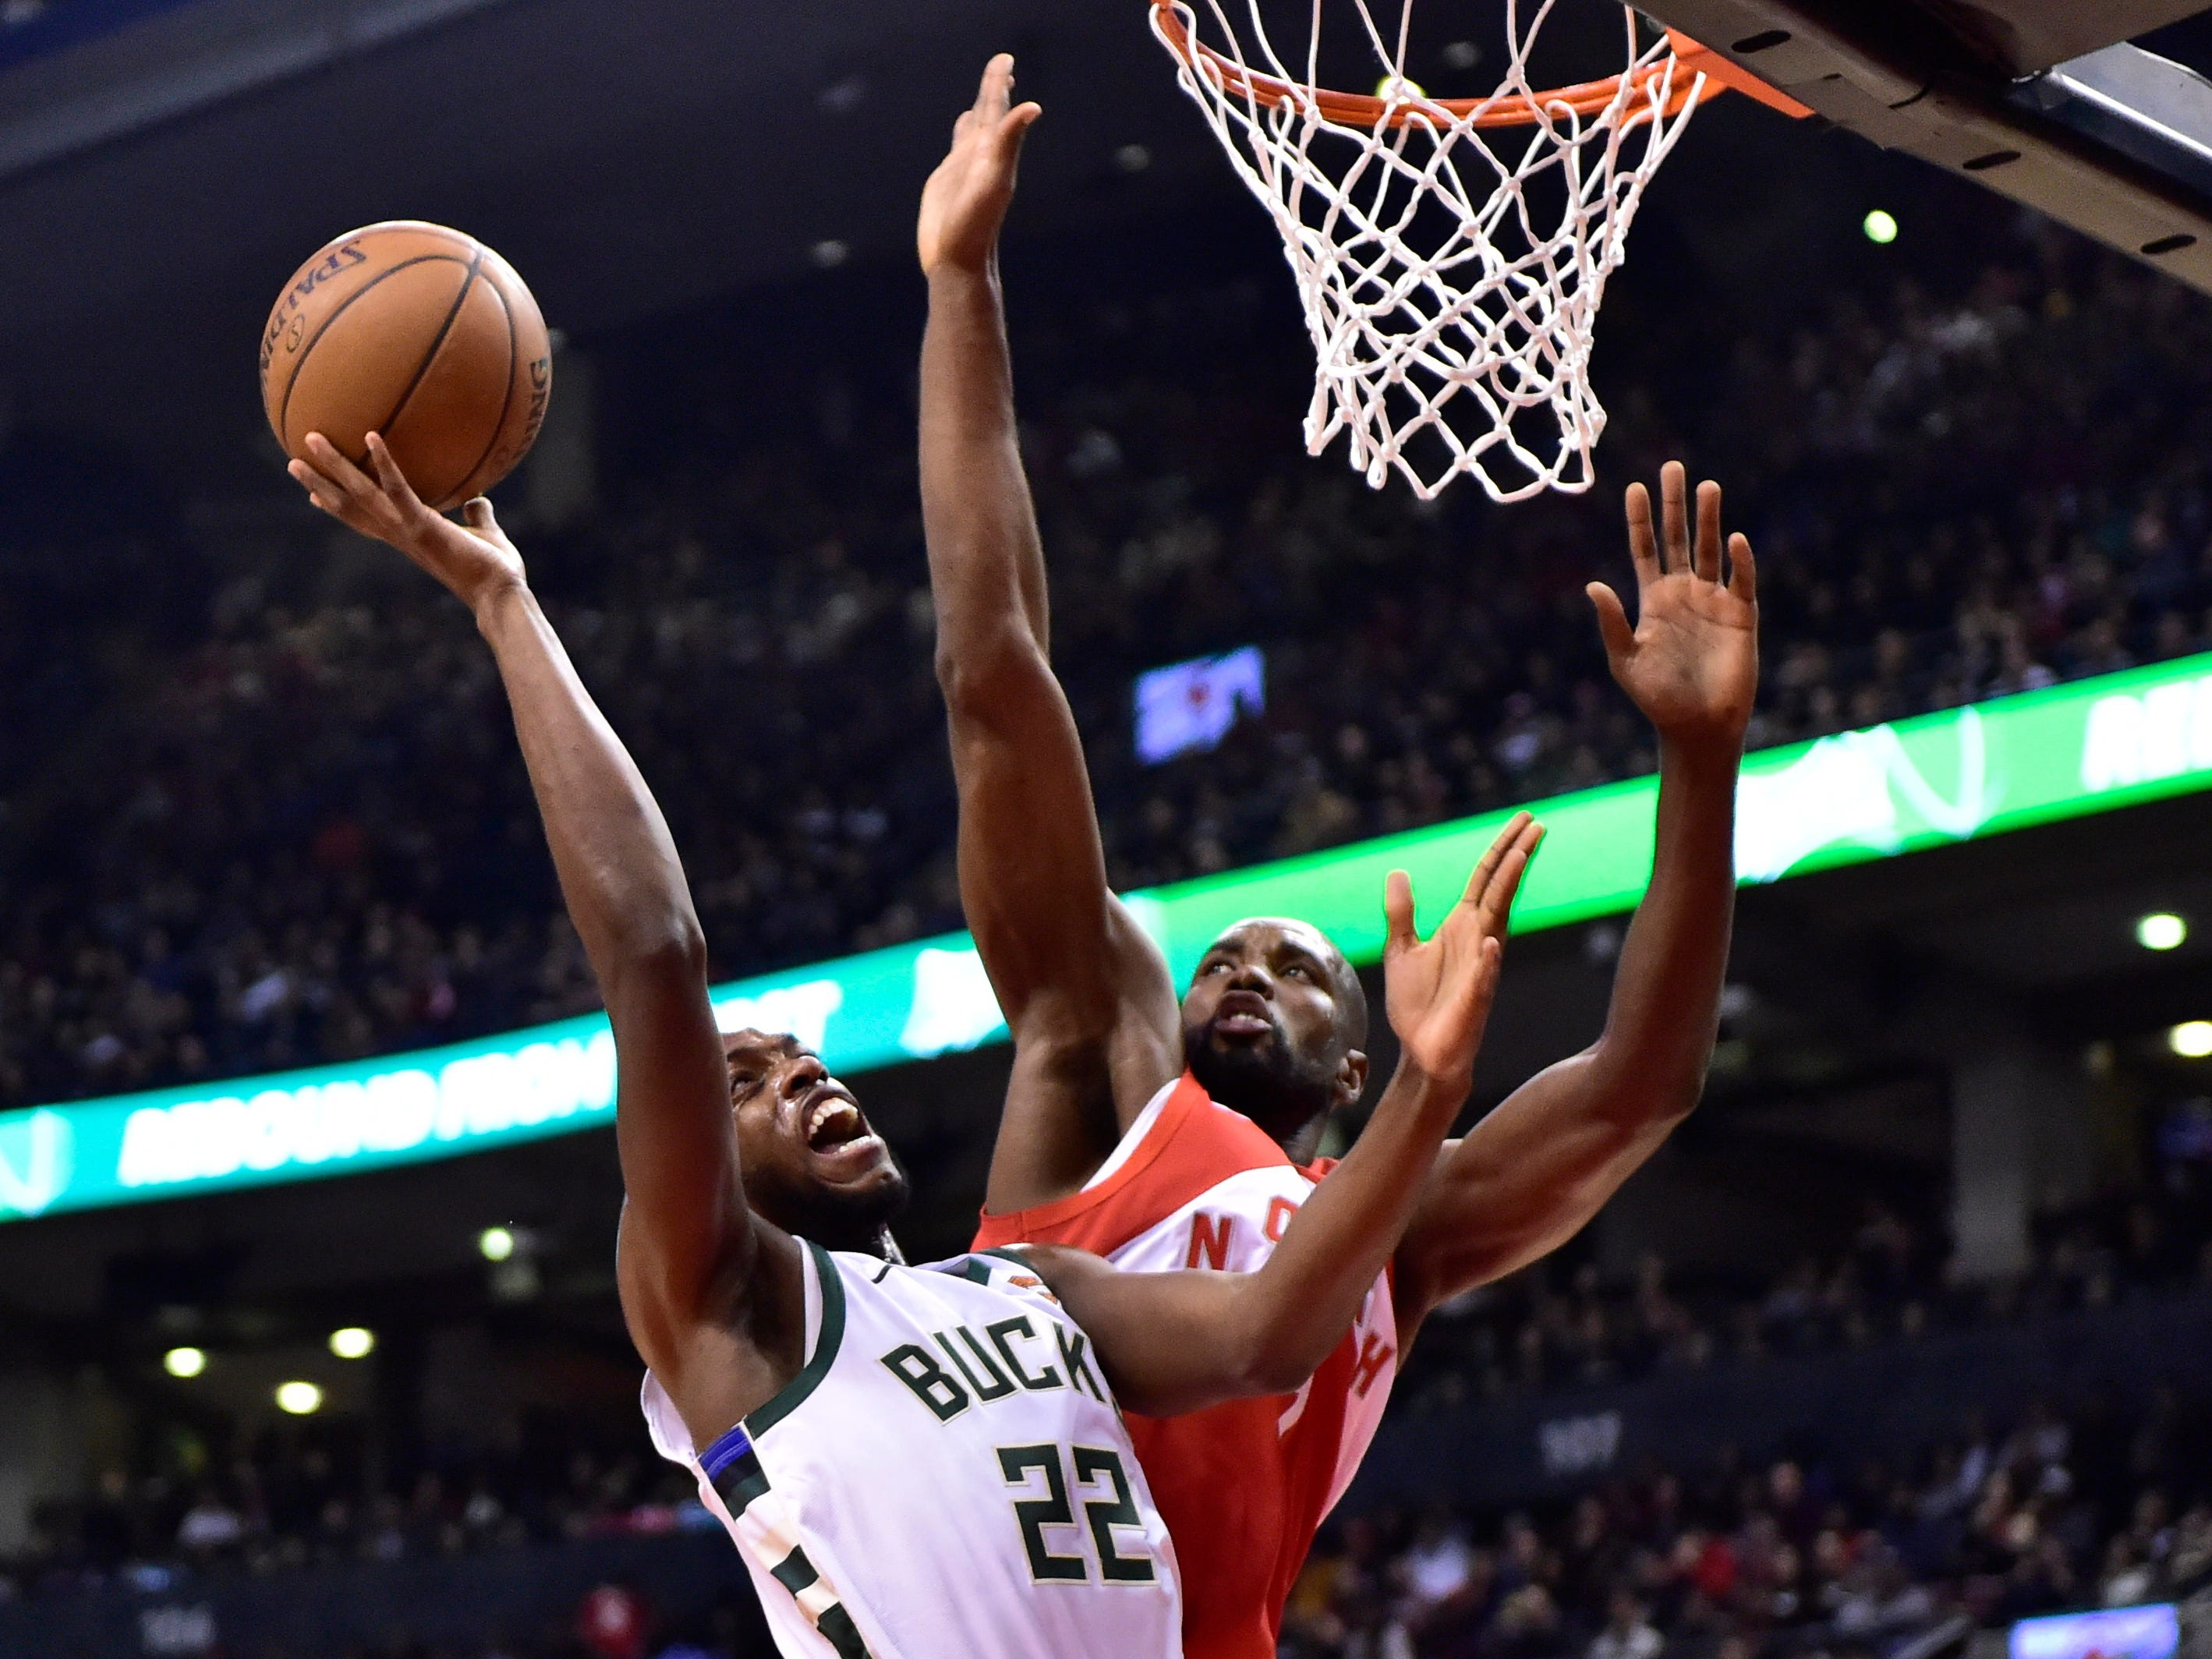 Khris Middleton,  who was named as an All-Star Game reserve before the Bucks' game in Toronto, goes up a shot down low against Raptors big man Serge Ibaka during the first half Thursday.